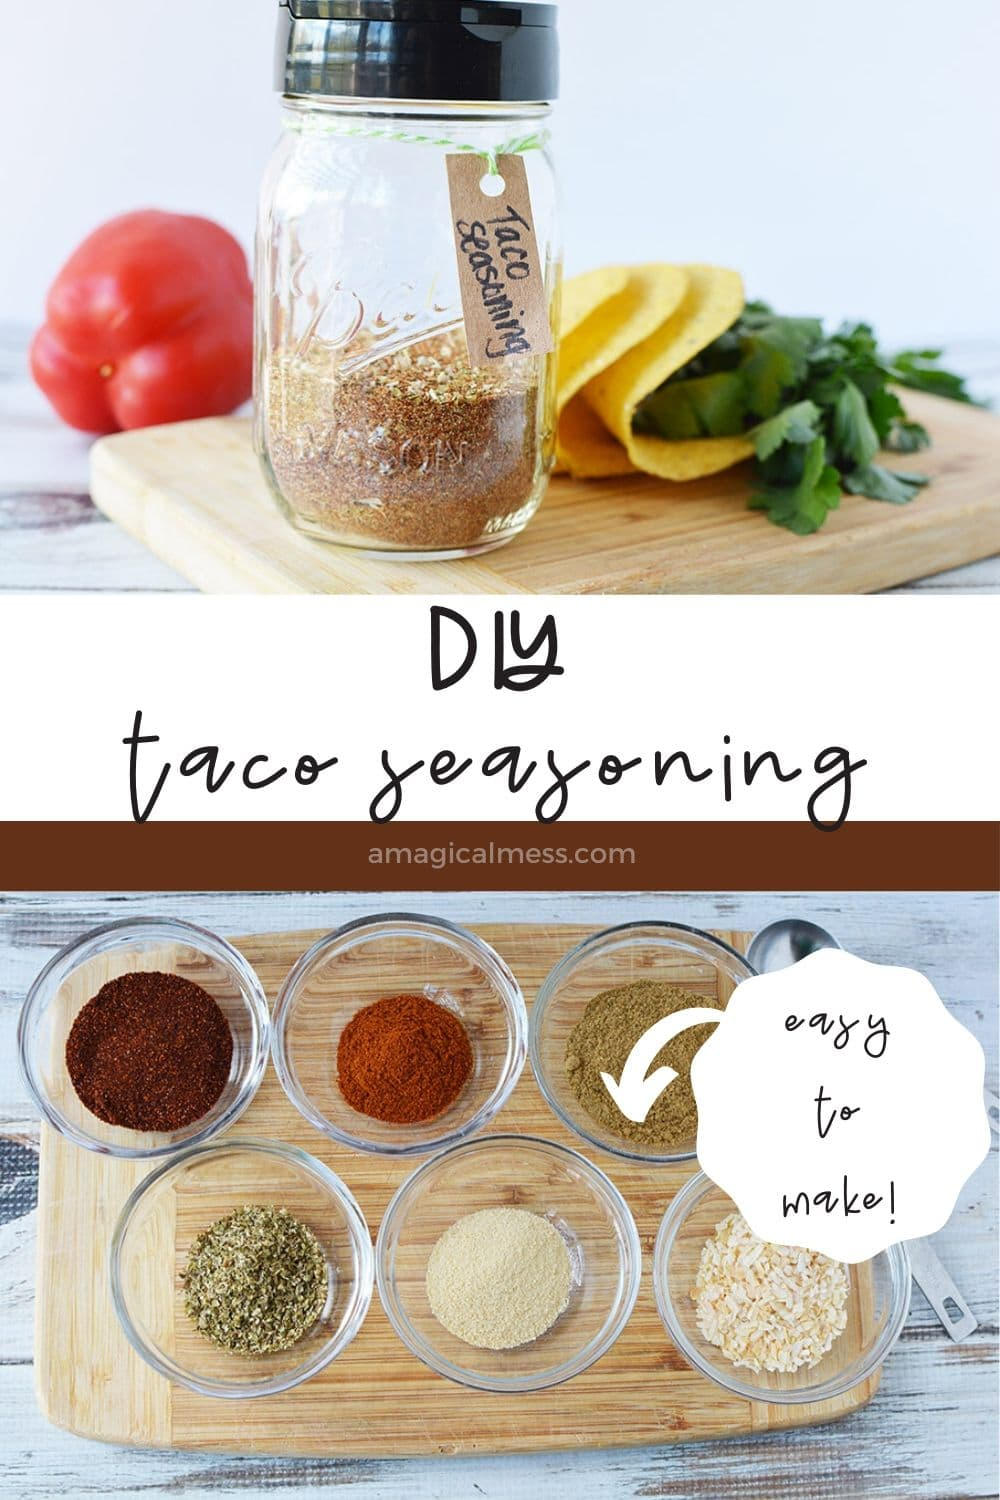 Taco seasoning in a jar and spices in little bowls